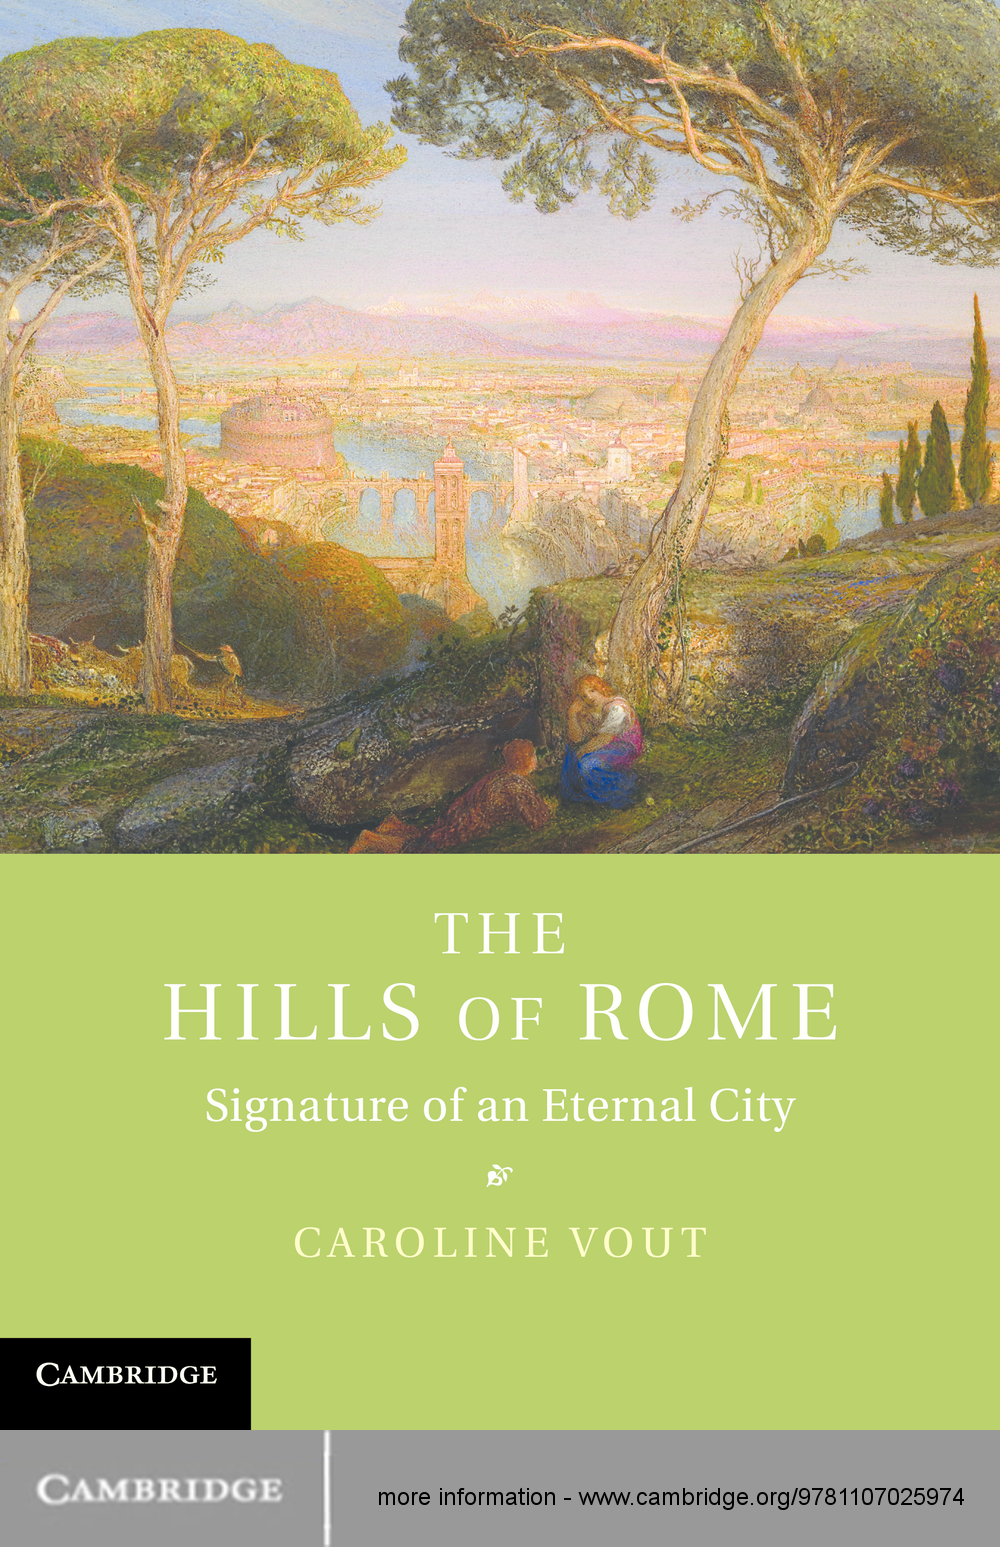 The Hills of Rome Signature of an Eternal City